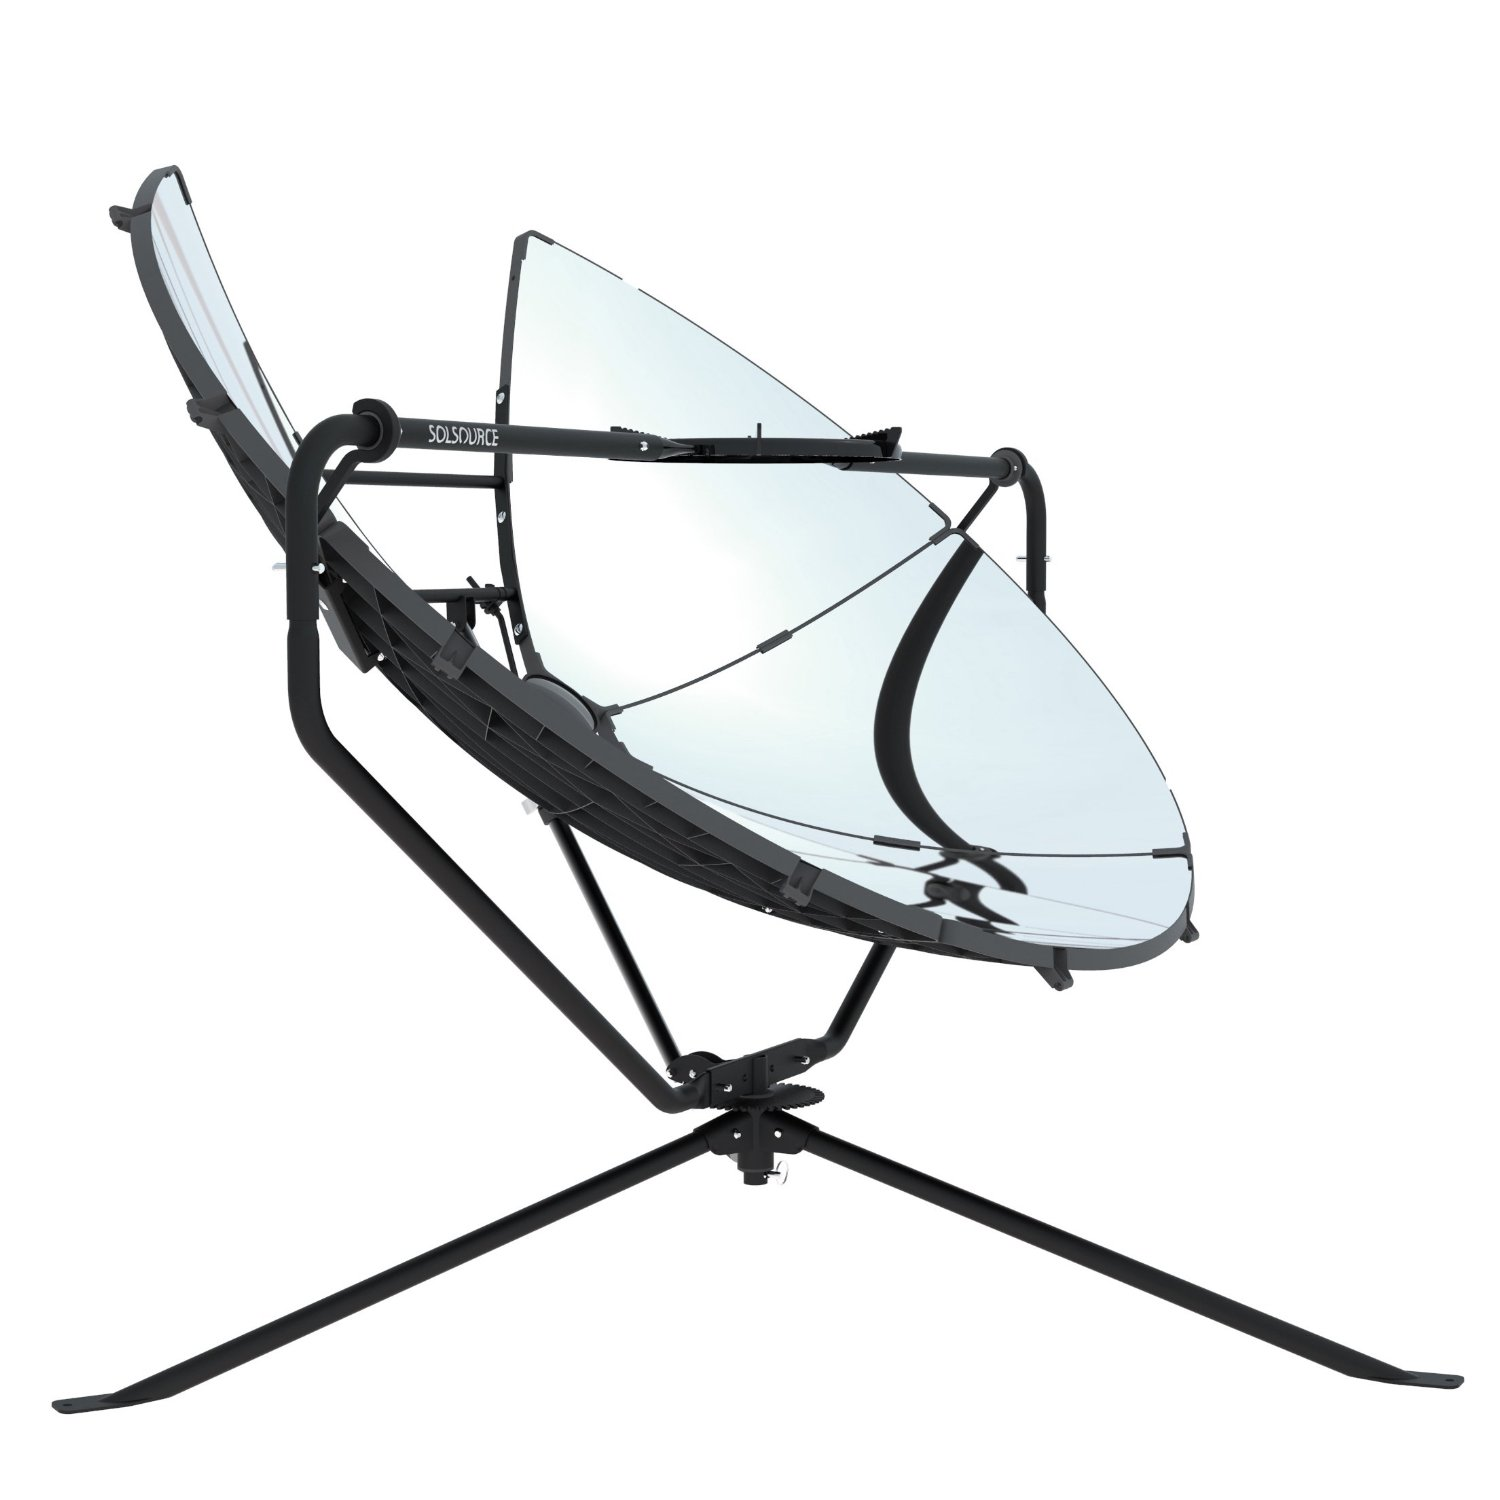 SolSource Parabolic Solar Cooker / Grill